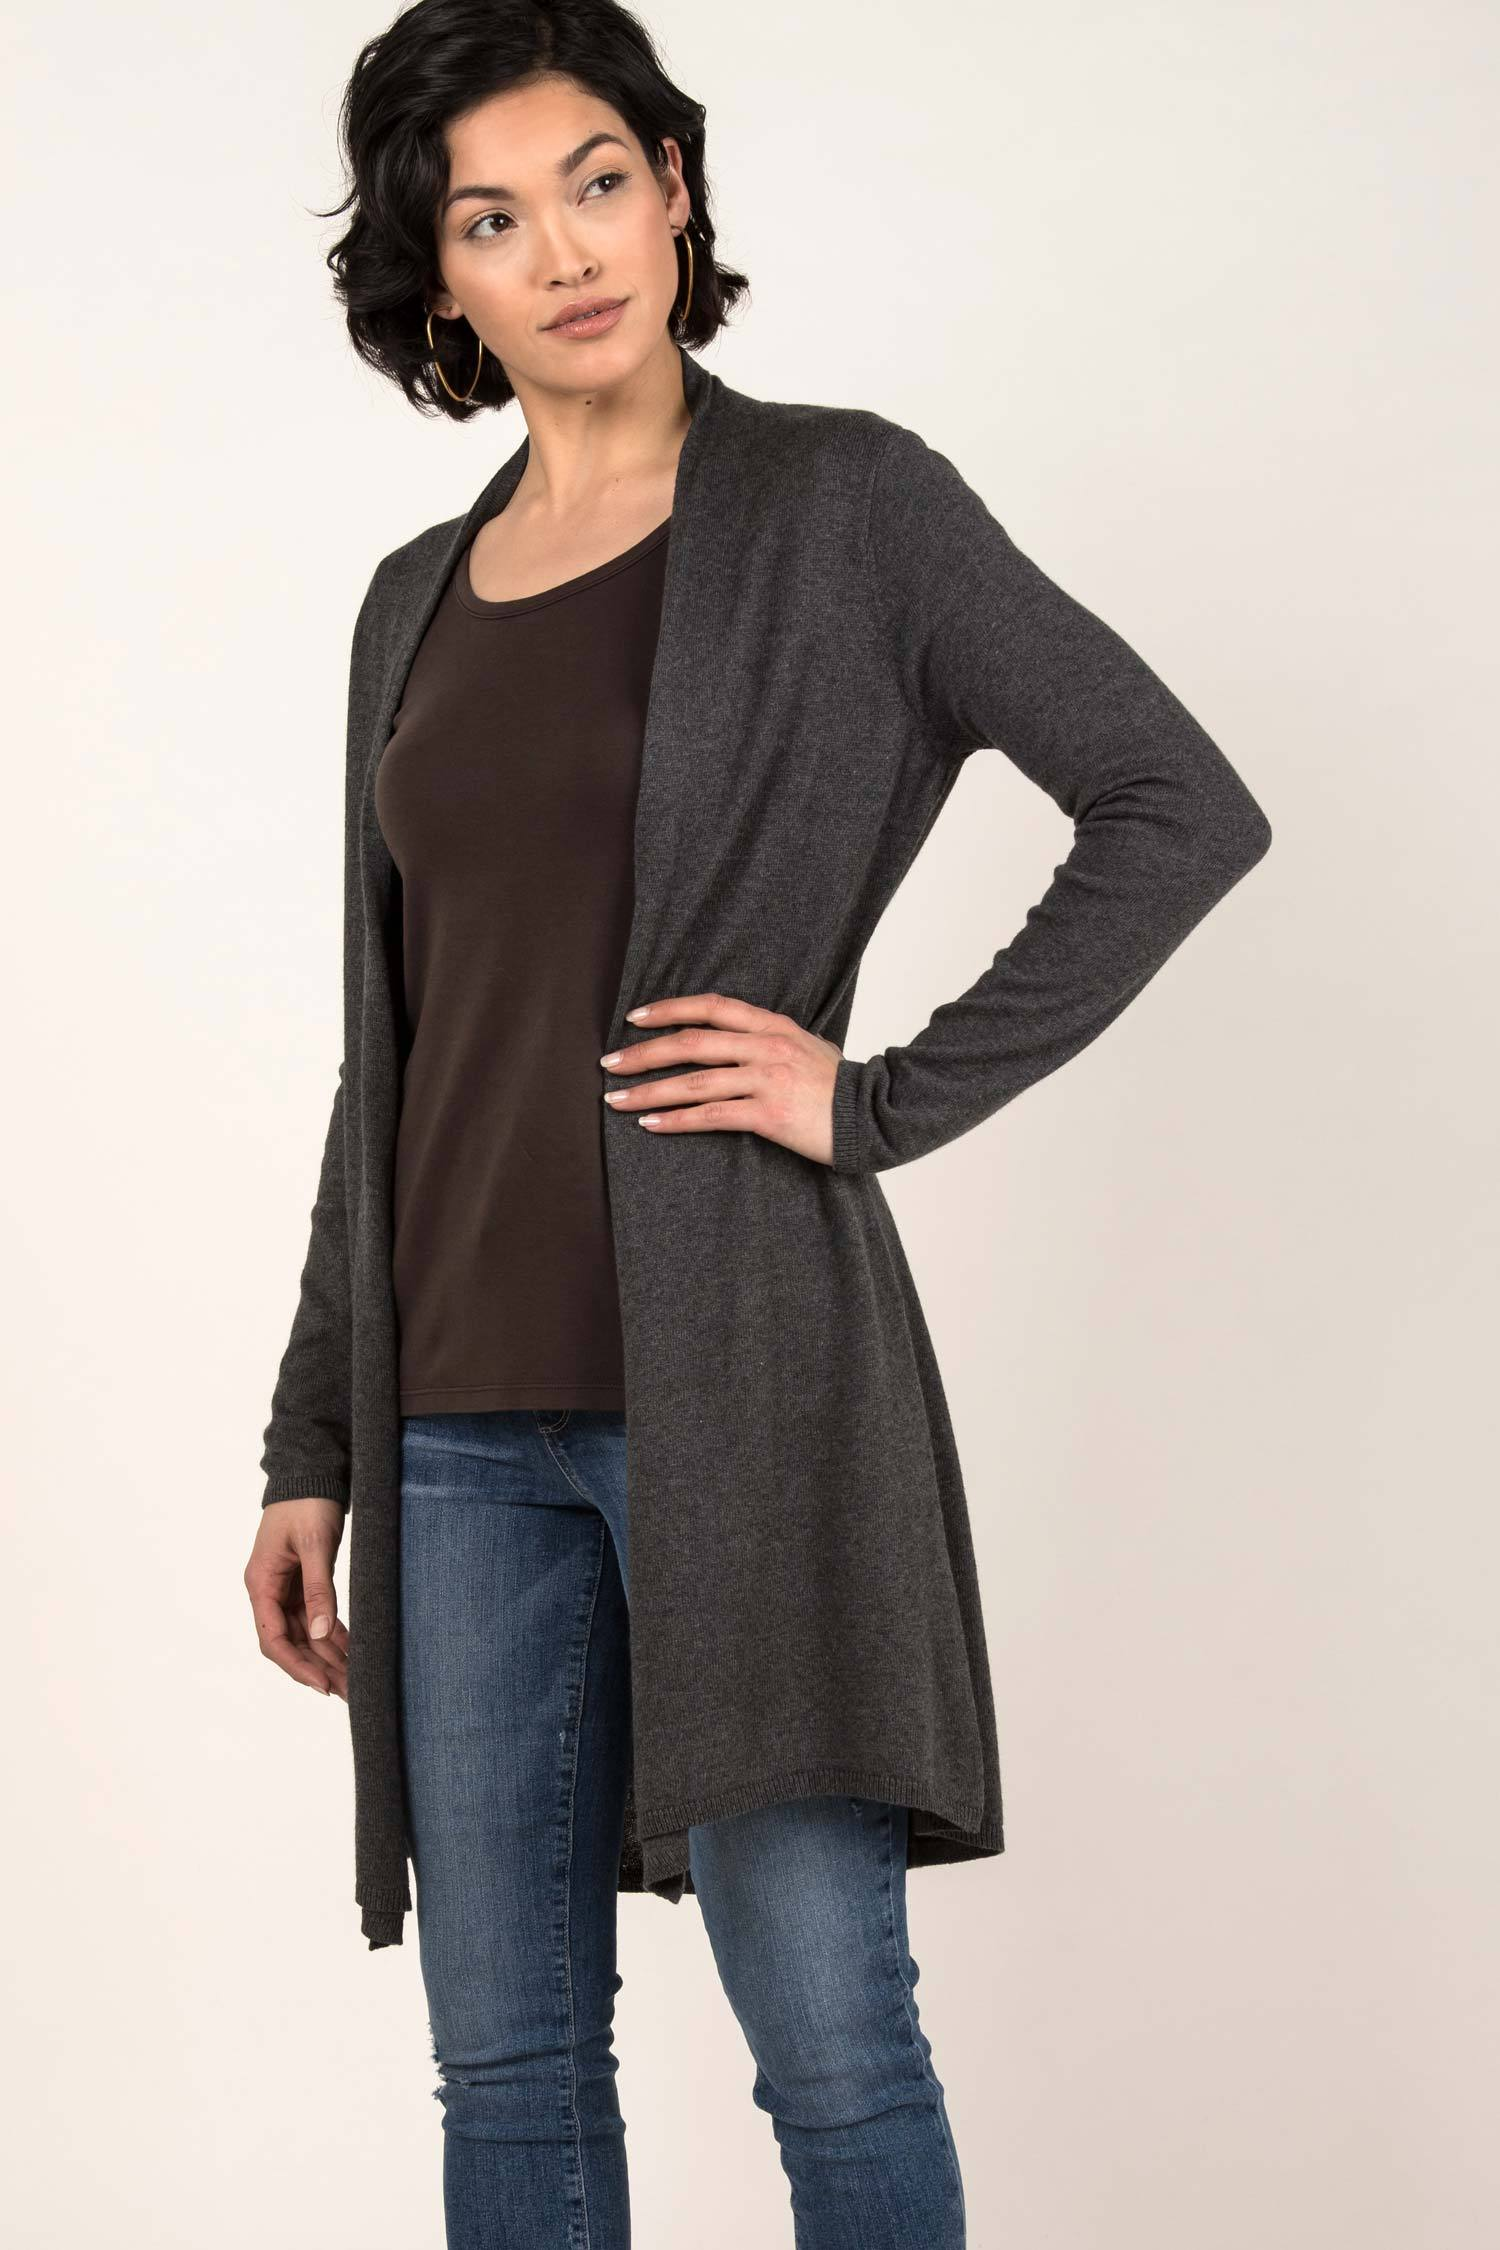 Womens Organic Cotton Sweater | Essential Knit Cardigan | Gray